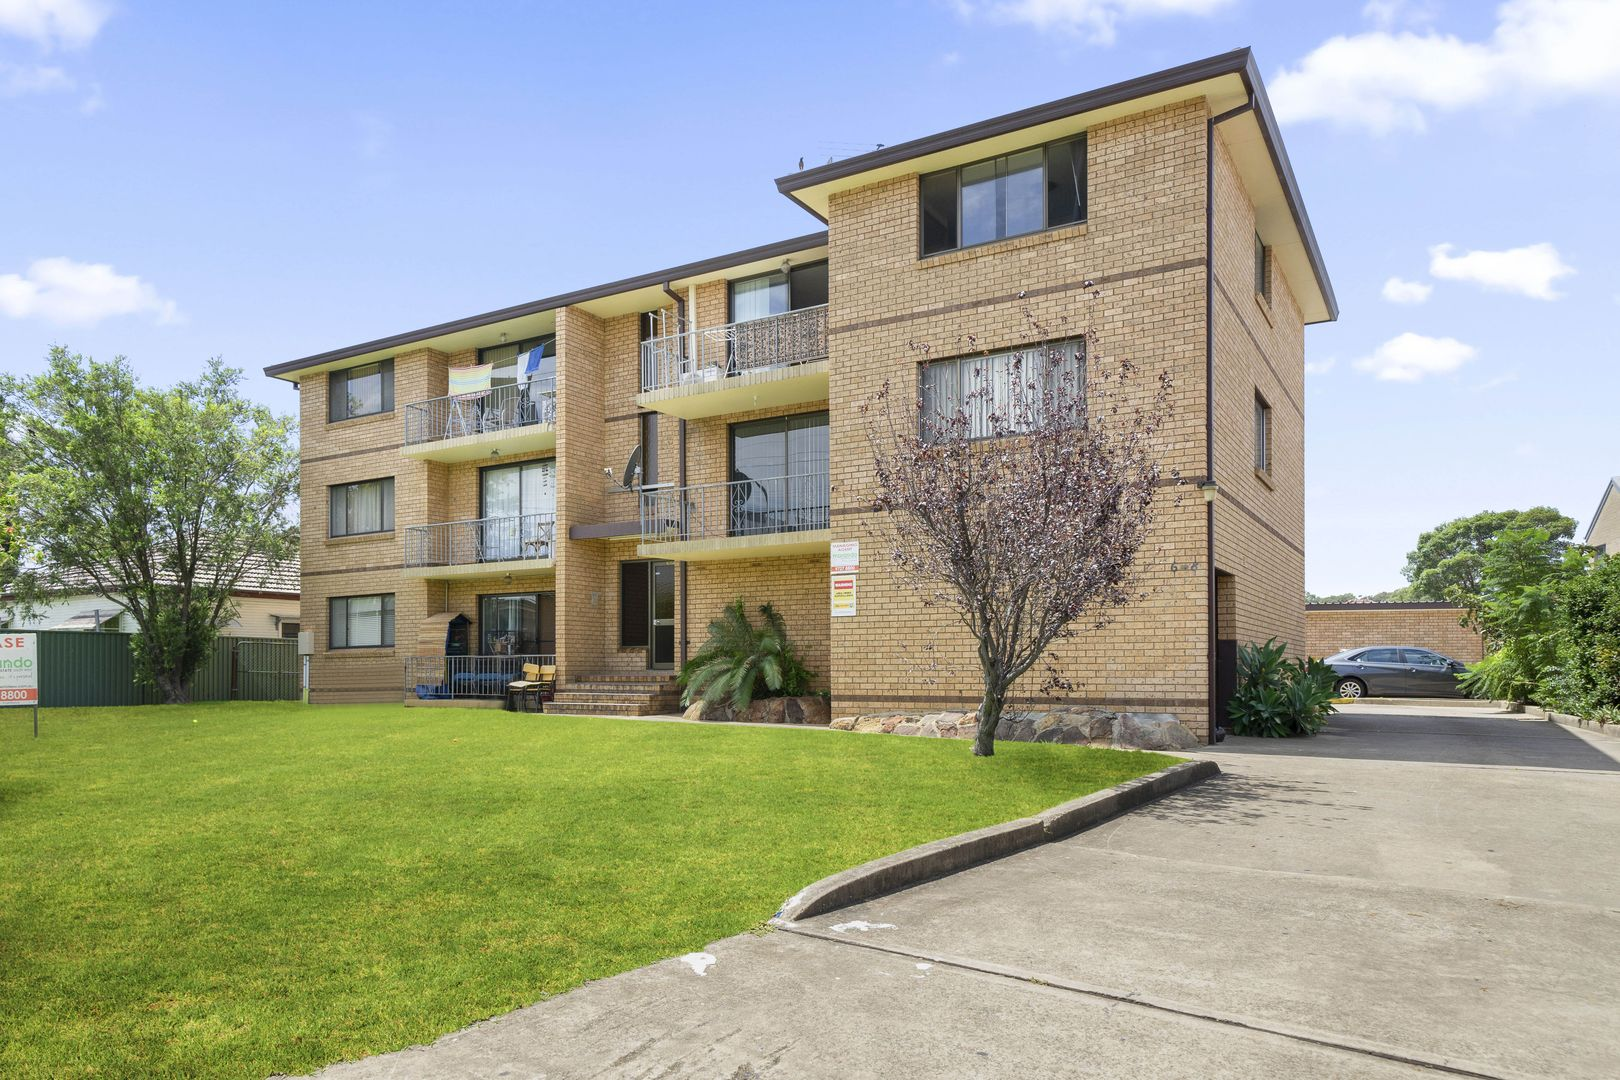 9/6-8 Fairlight Avenue, Fairfield NSW 2165, Image 1